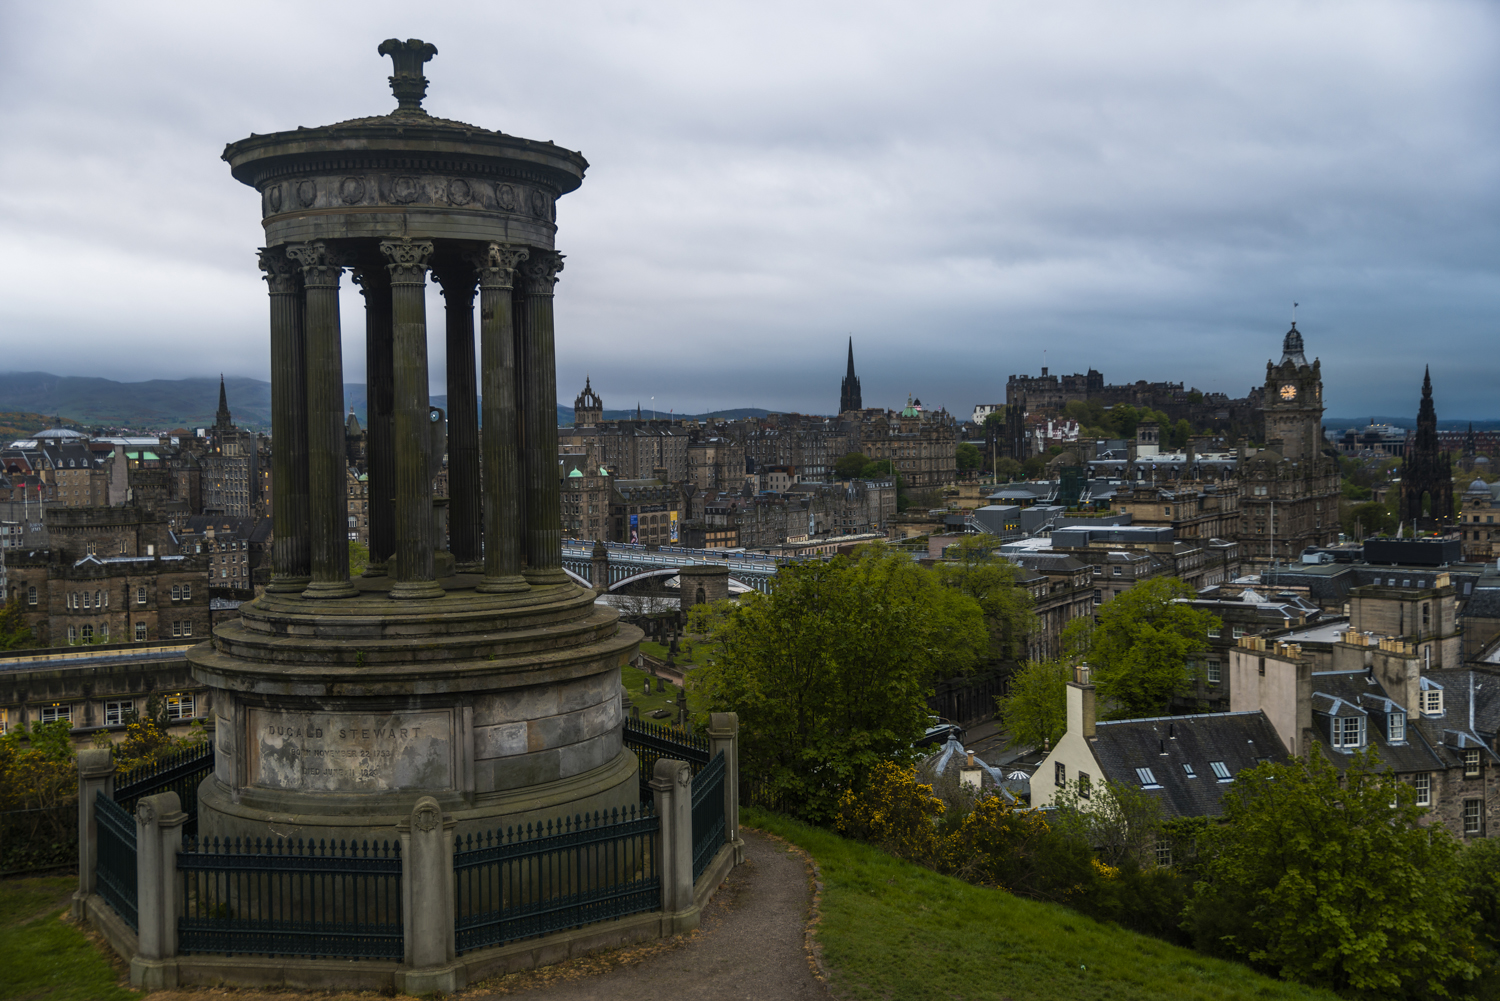 https://sleeklens.com/wp-content/uploads/2016/10/EdinburghMaj2015-D800-22-1.jpg